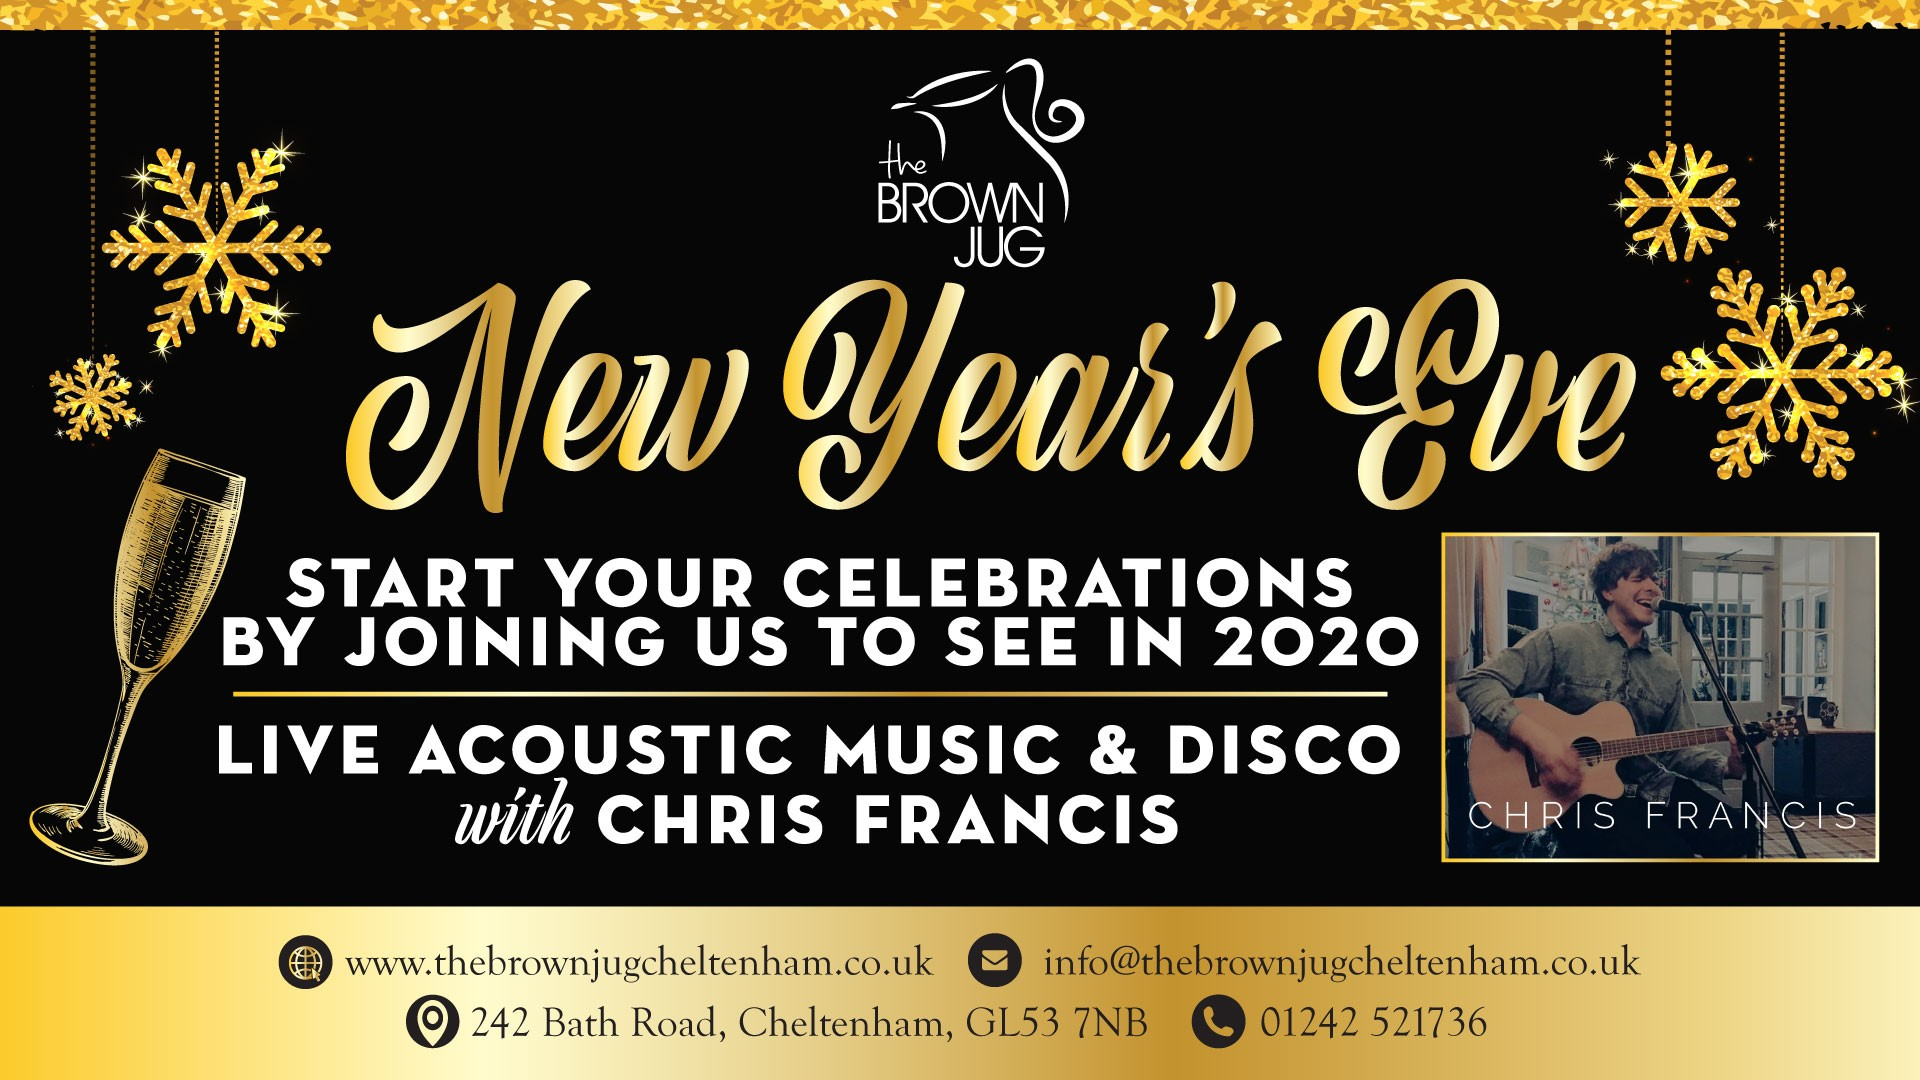 NEW YEARS EVE: CHRIS FRANCIS